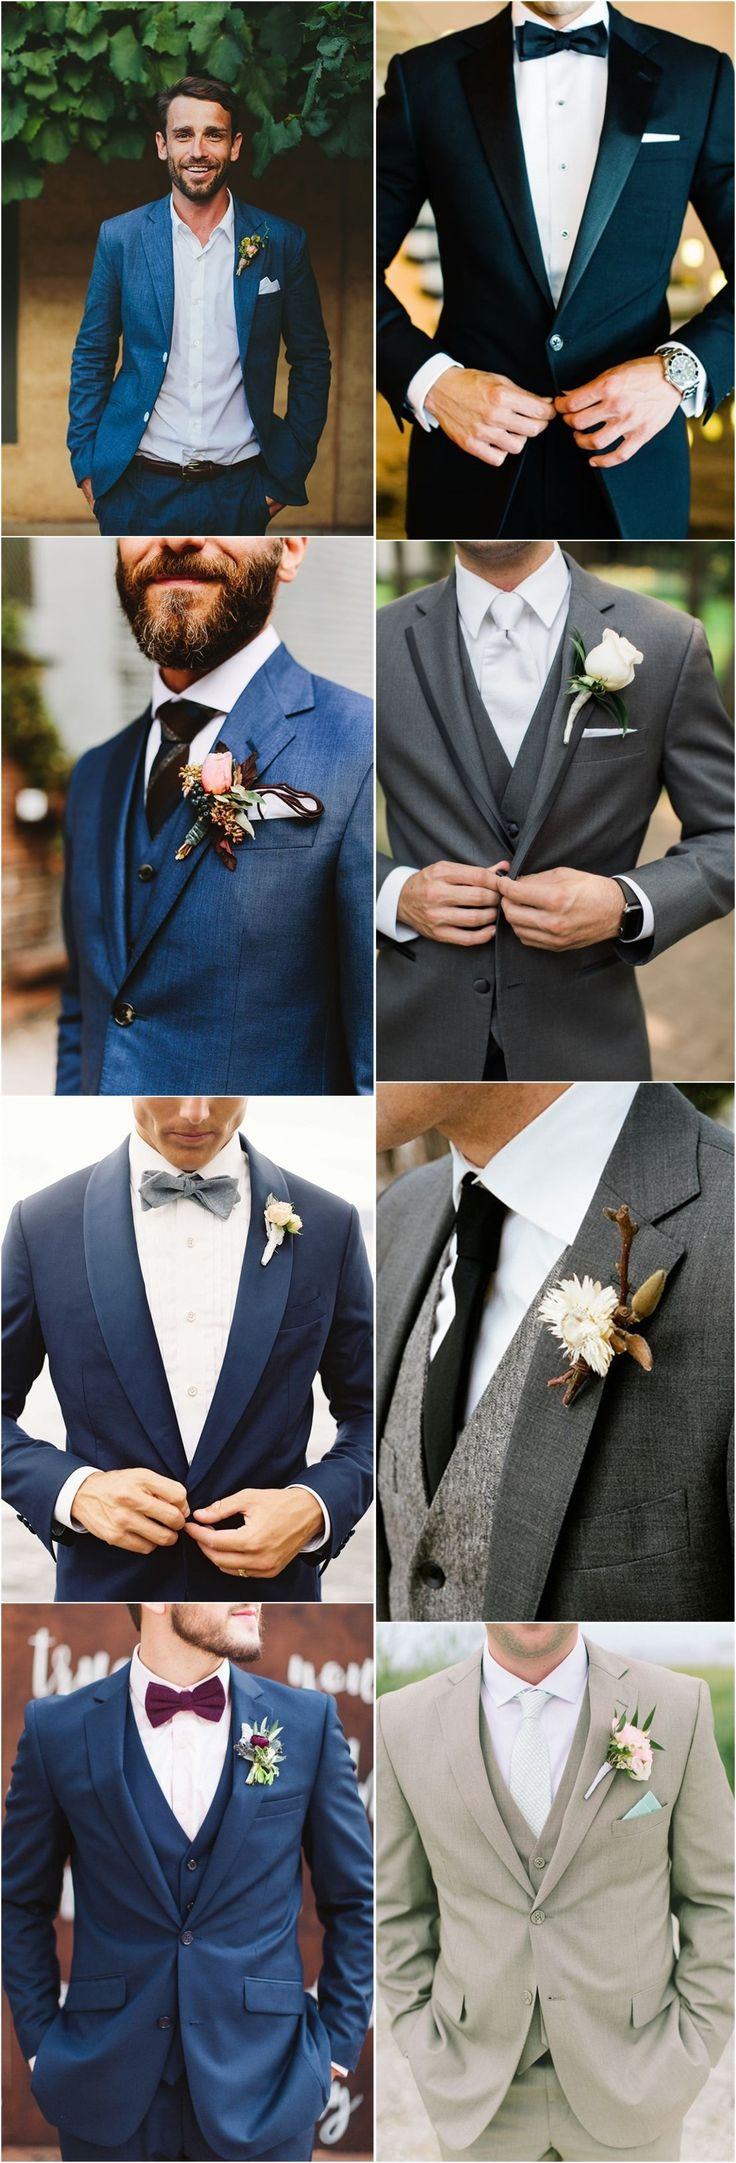 Wedding Ideas » Groom » 36 Groom Suit That Express Your Unique Styles and Personalities » ❤️ See more: #Capri #Jewelers #Arizona Offers Unique #Jewelry along with No Credit Check #Financing Options ~ #Jeweler on premises ~ Lifetime Warranty ~ We Price Match & much more…Stop by or #Shop #Online www.caprijewelersaz.com